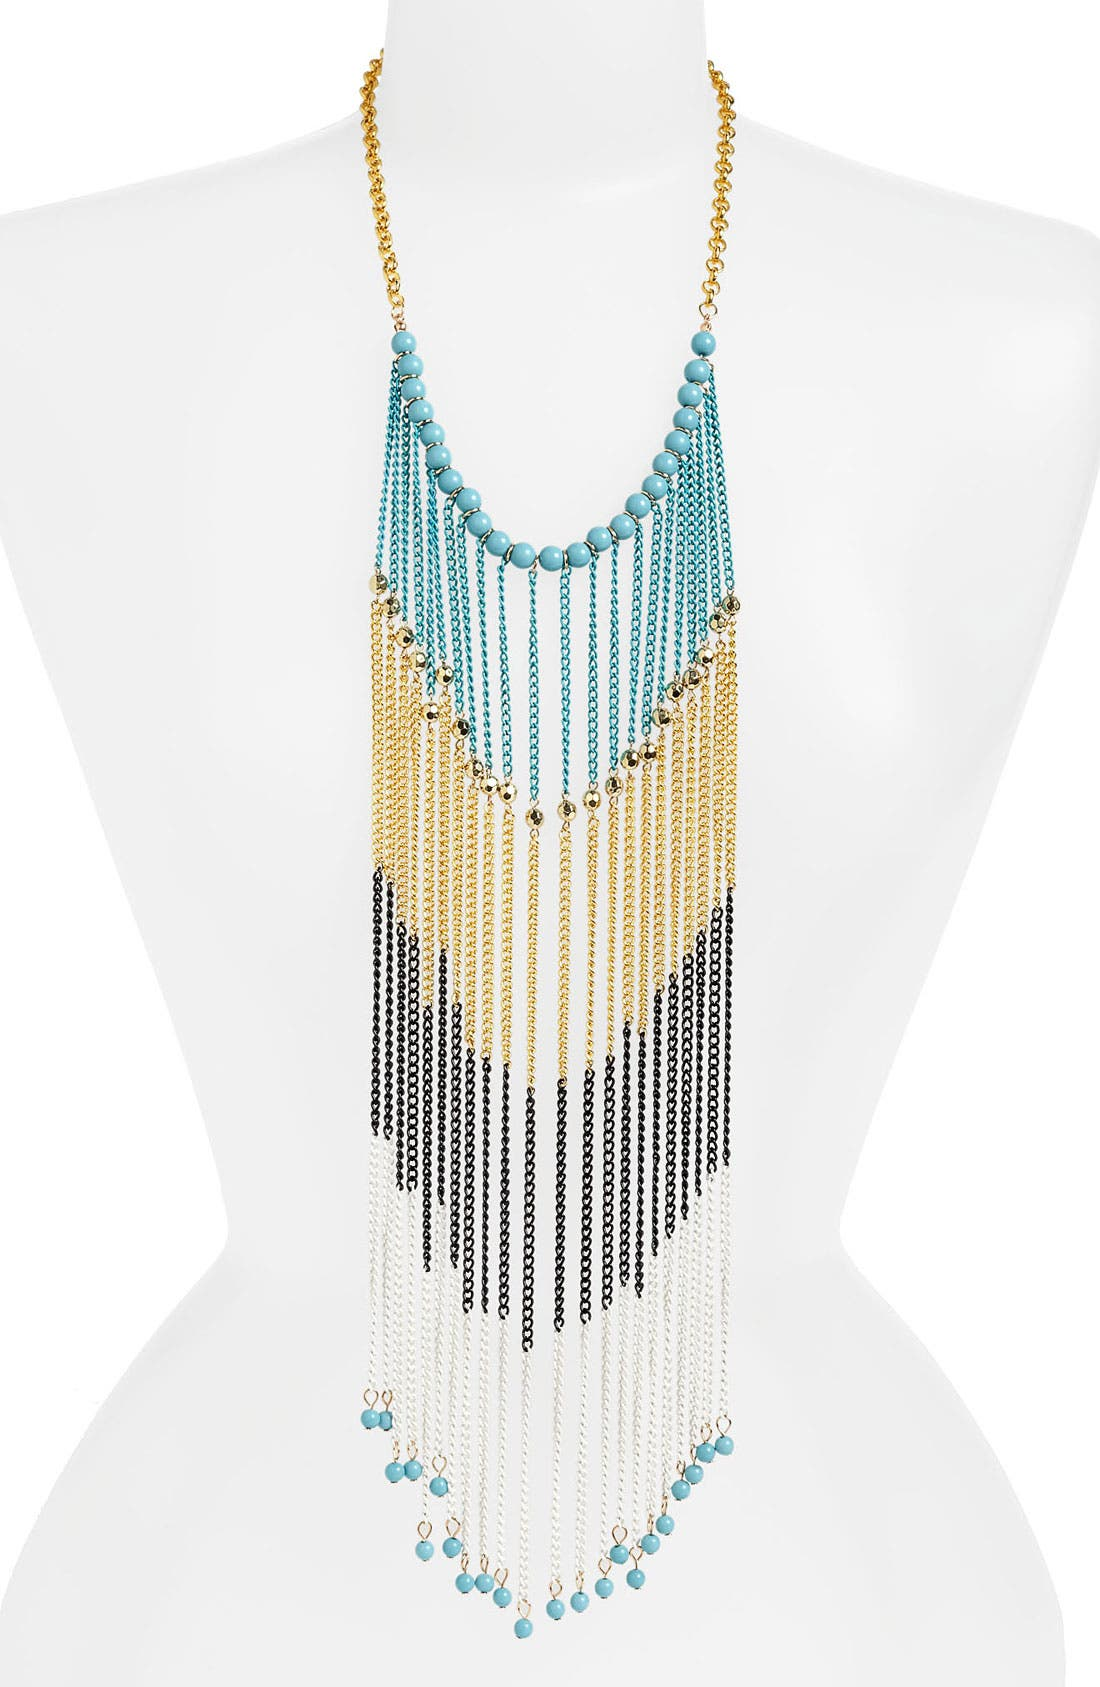 Main Image - BP. Mixed Metal Chain Fringe Necklace